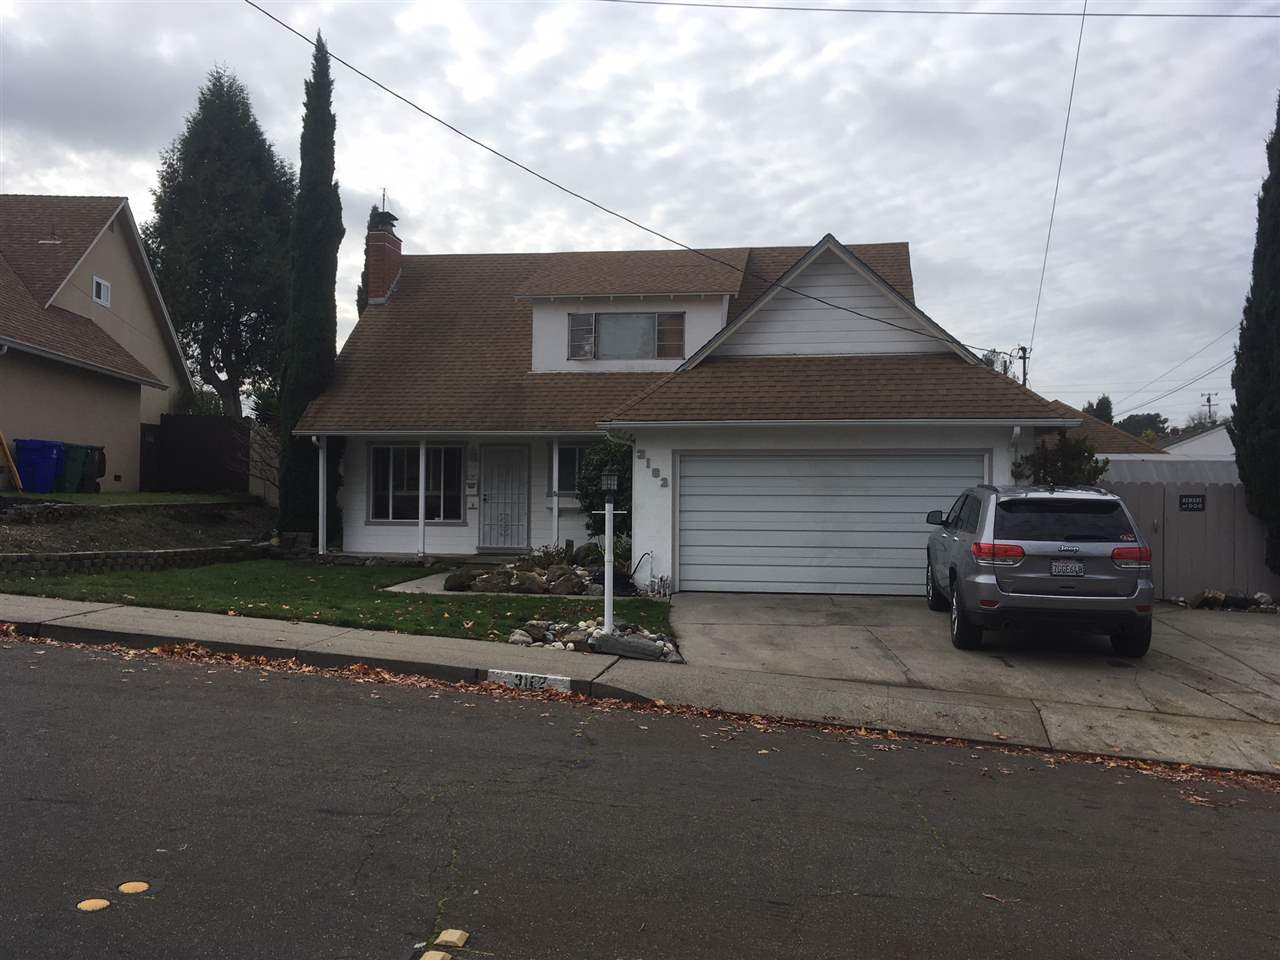 3162 KEITH DR, RICHMOND, CA 94803